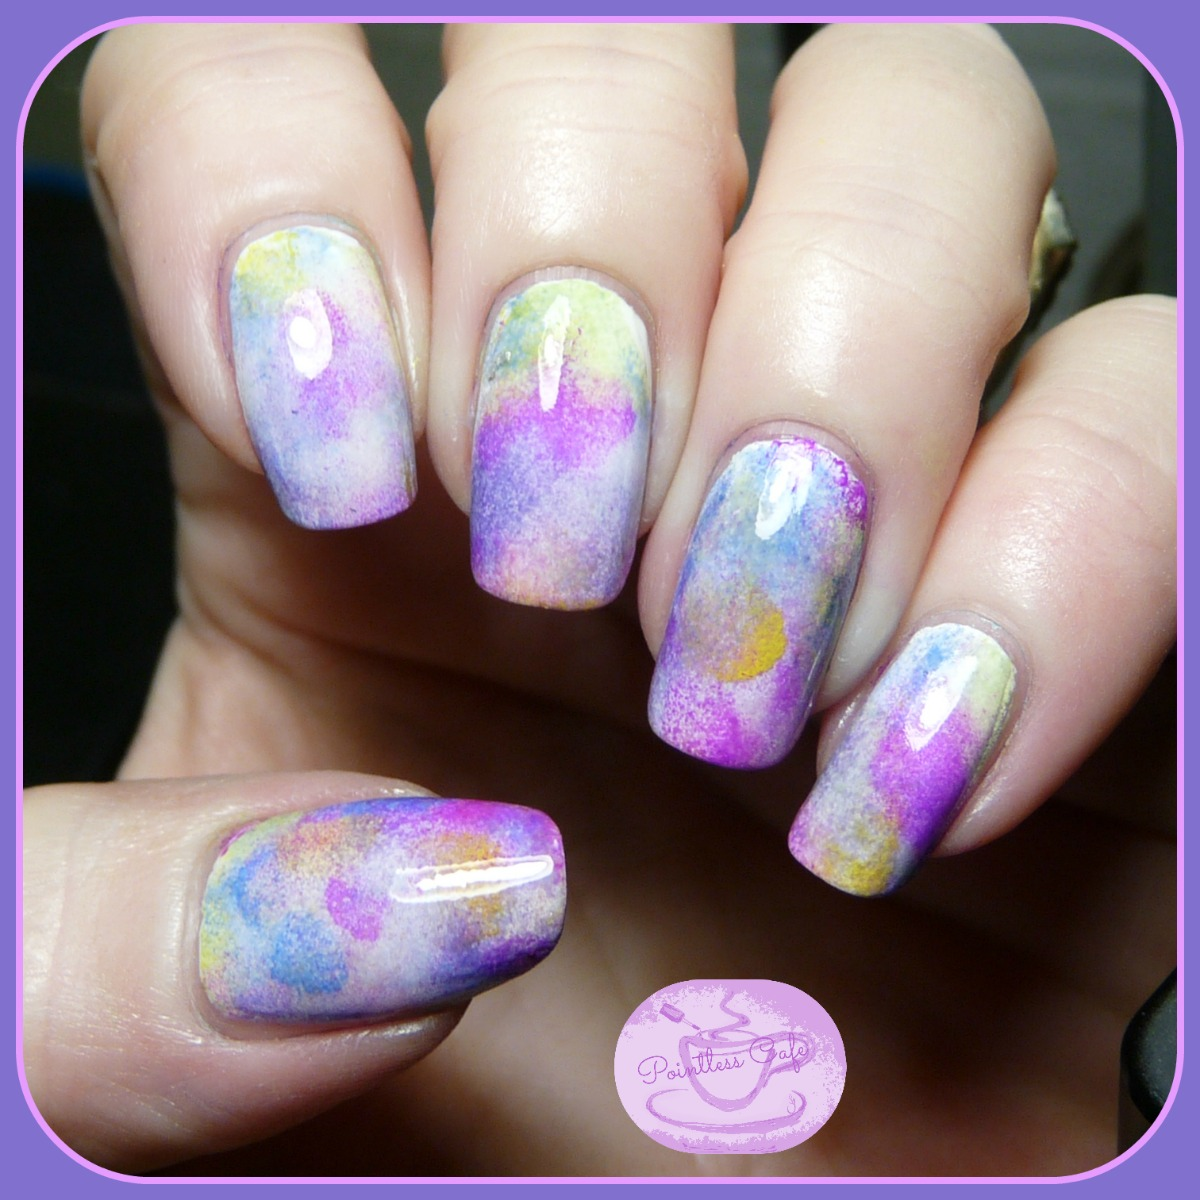 13 Days of January Nail Art Challenge: Blobbicure | Pointless Cafe